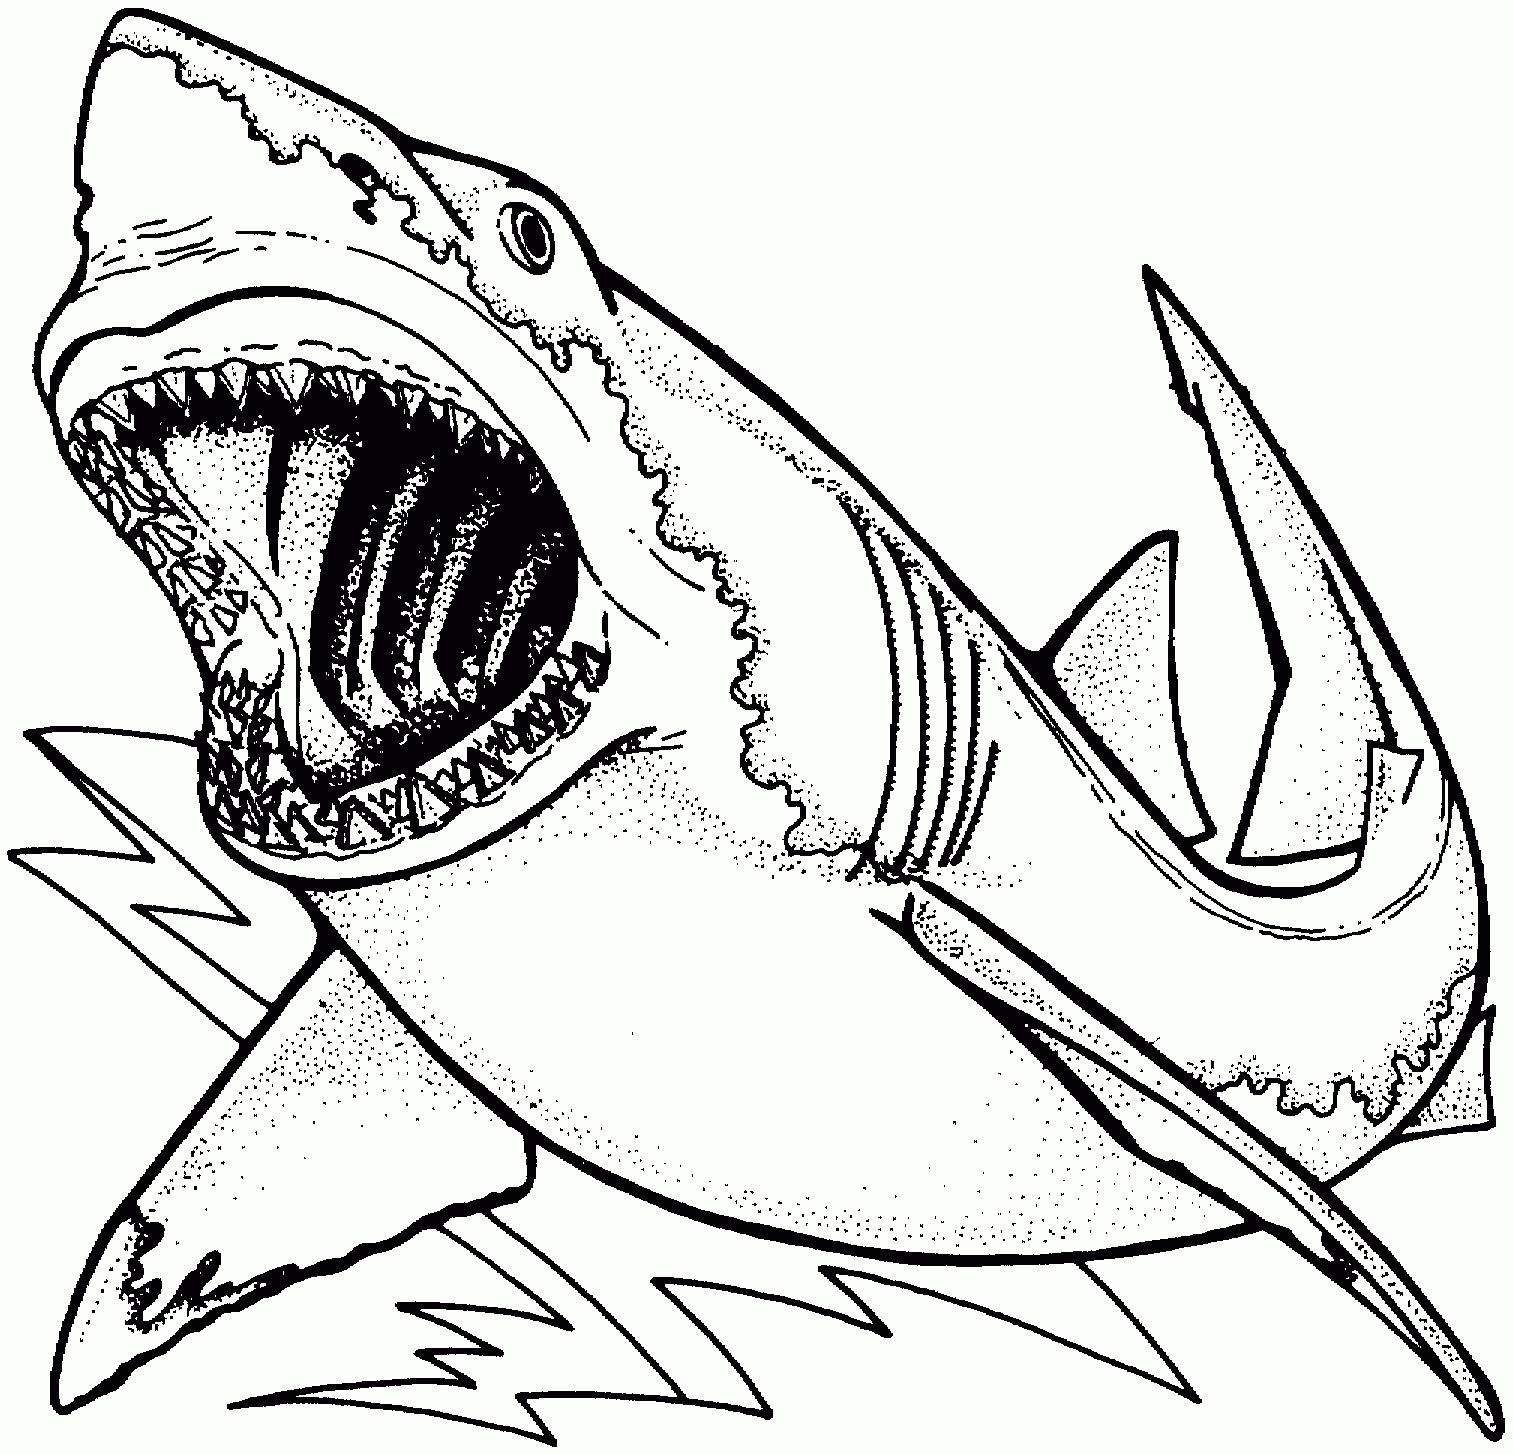 Shark Coloring Pages Pdf Printable Free Coloring Sheets Shark Coloring Pages Animal Coloring Pages Cars Coloring Pages